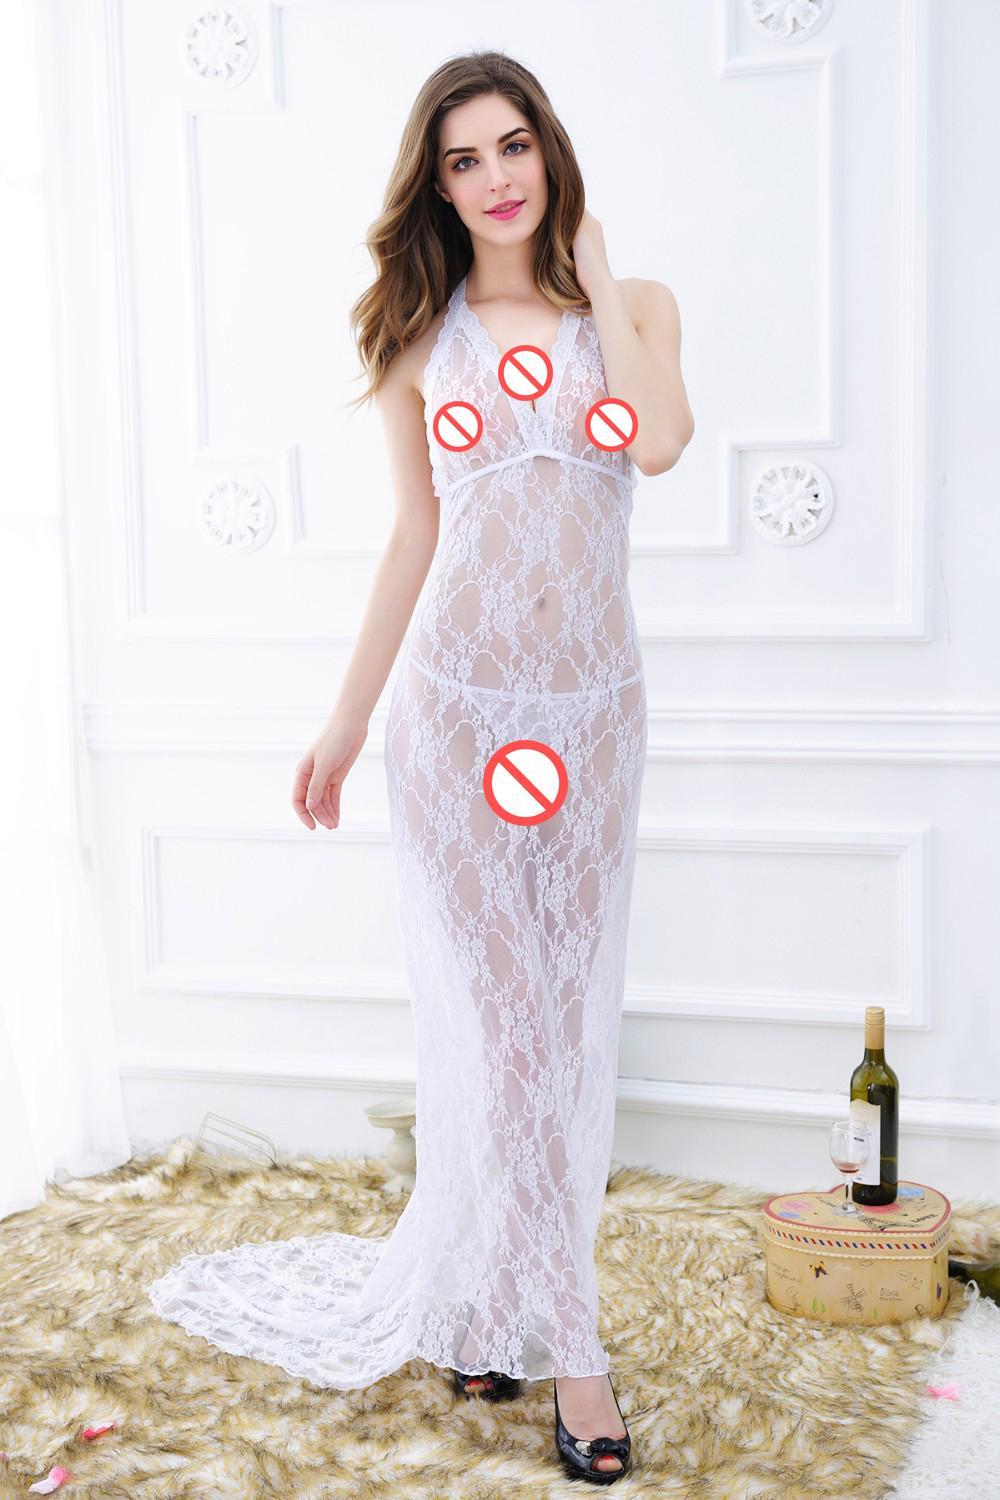 a7b9076943ee 2019 Women Underwear Nightwear Erotic Lingerie V Collar Backless Maxi Hot  Transparent Lace Dress Long Sexy Night Dresses Nightgowns From Jessicazeng